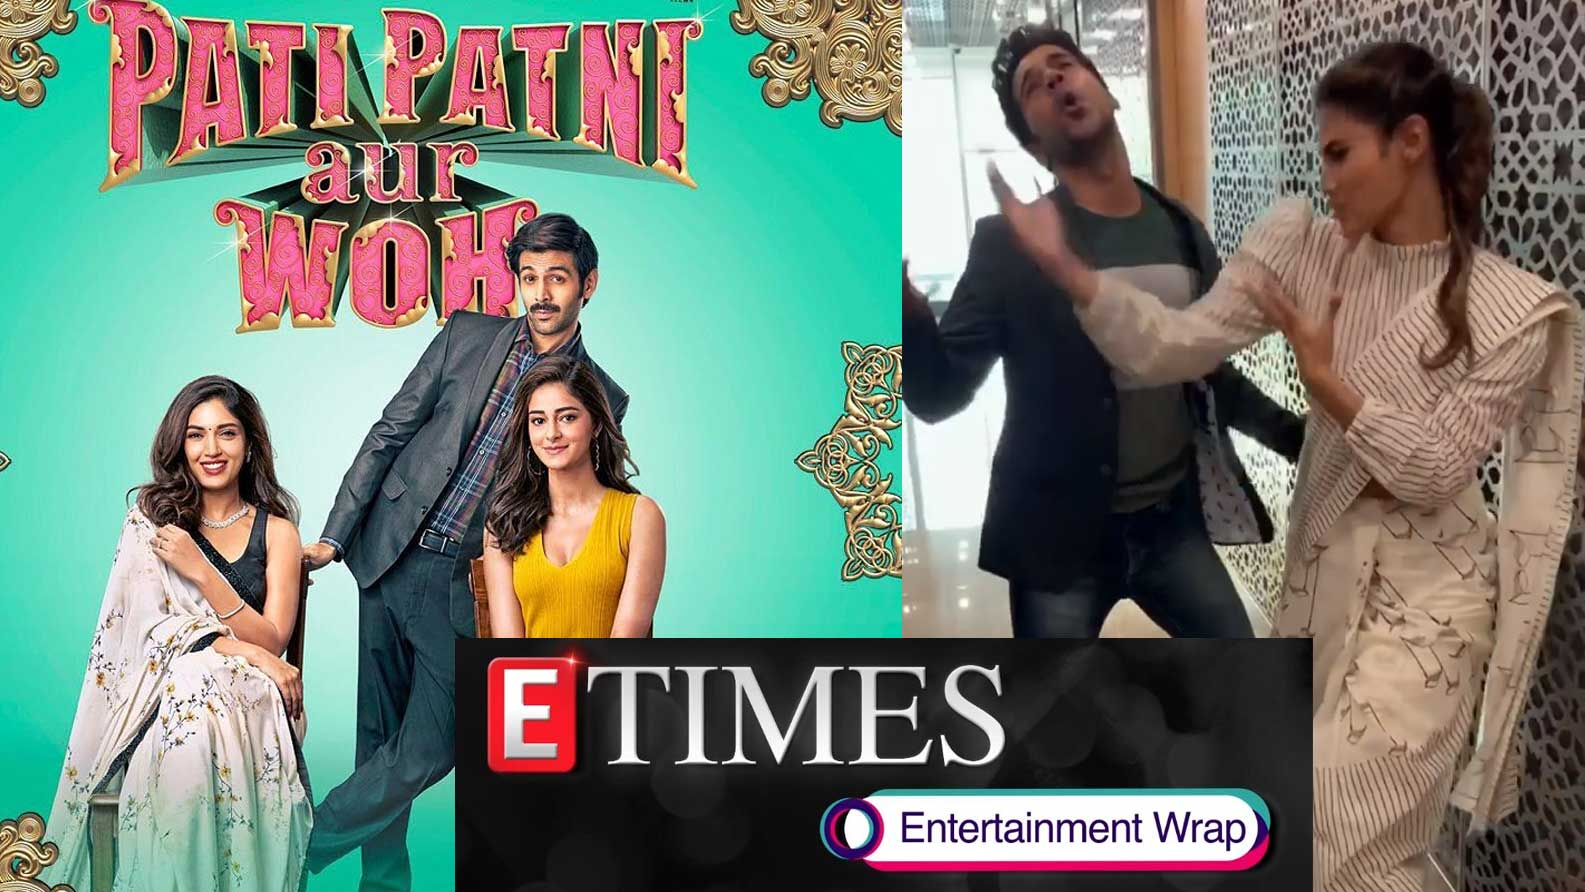 Kartik Aaryan, Ananya Panday, Bhumi Pednekar unveil 'Pati, Patni aur Woh' posters; Rajkummar Rao's hilarious video with Mouni Roy goes viral, and more...